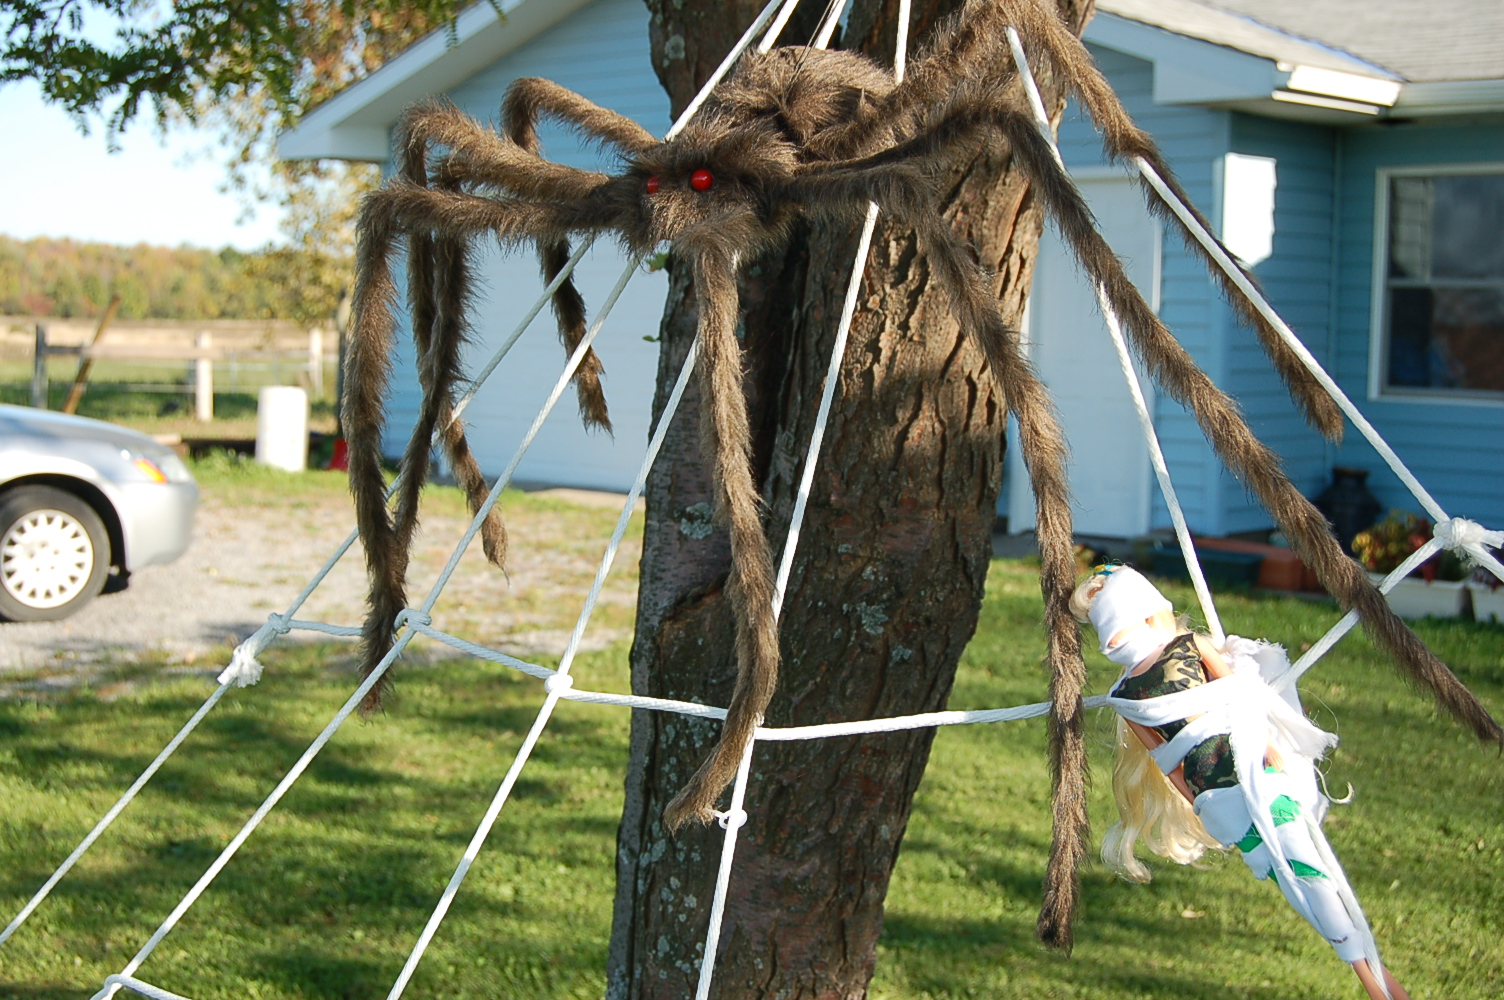 halloween diy 2 giant lawn spiderwebs. Black Bedroom Furniture Sets. Home Design Ideas